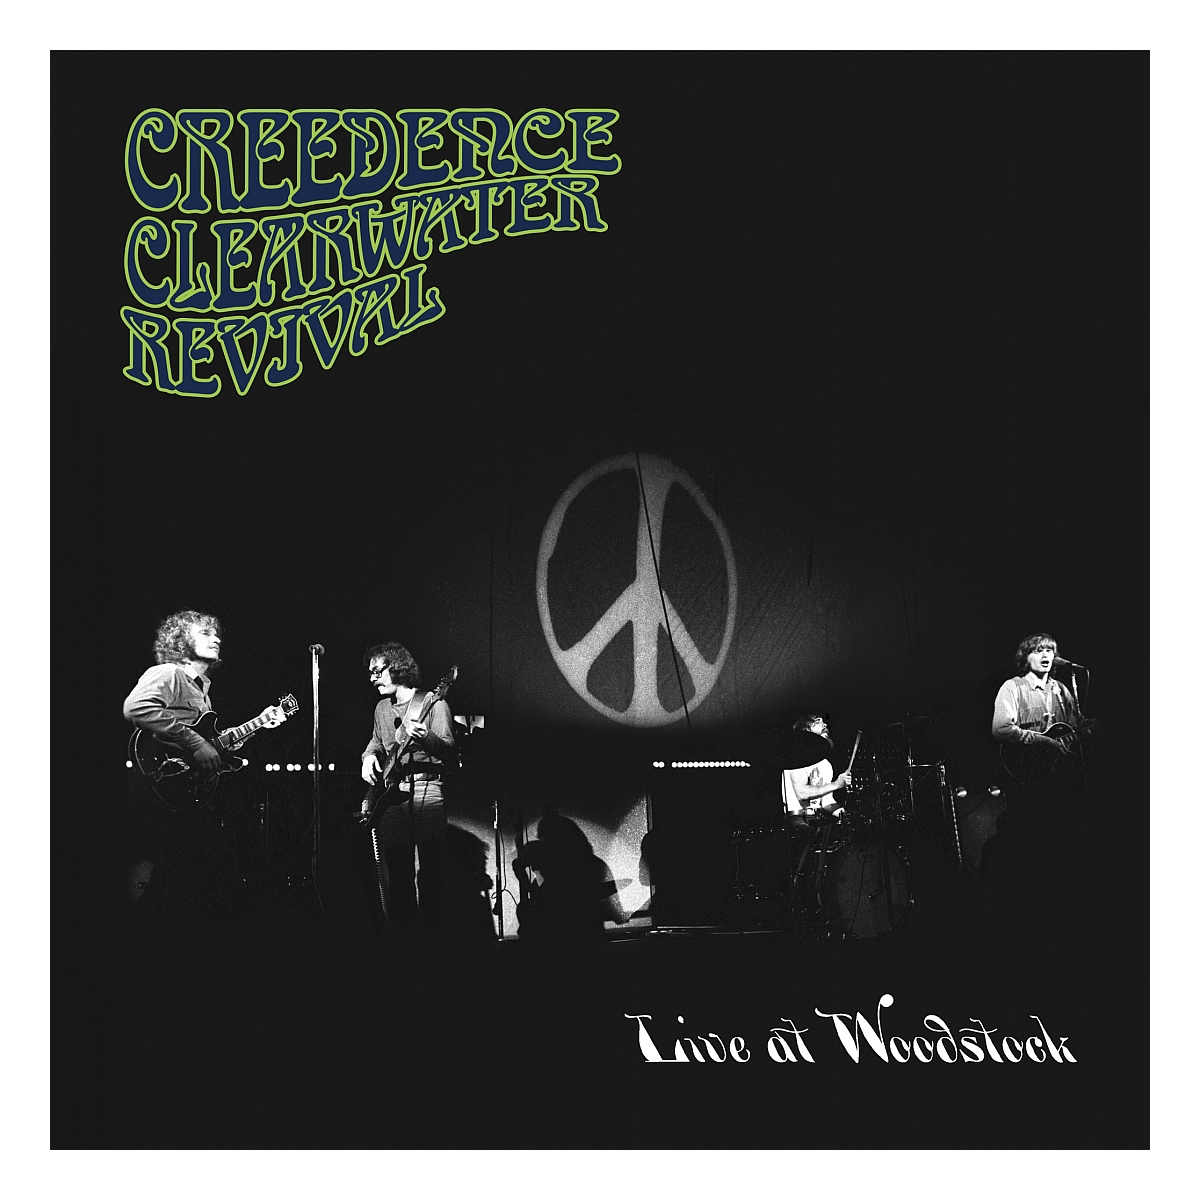 Creedence Clearwater Revival - Live at Woodstock CD